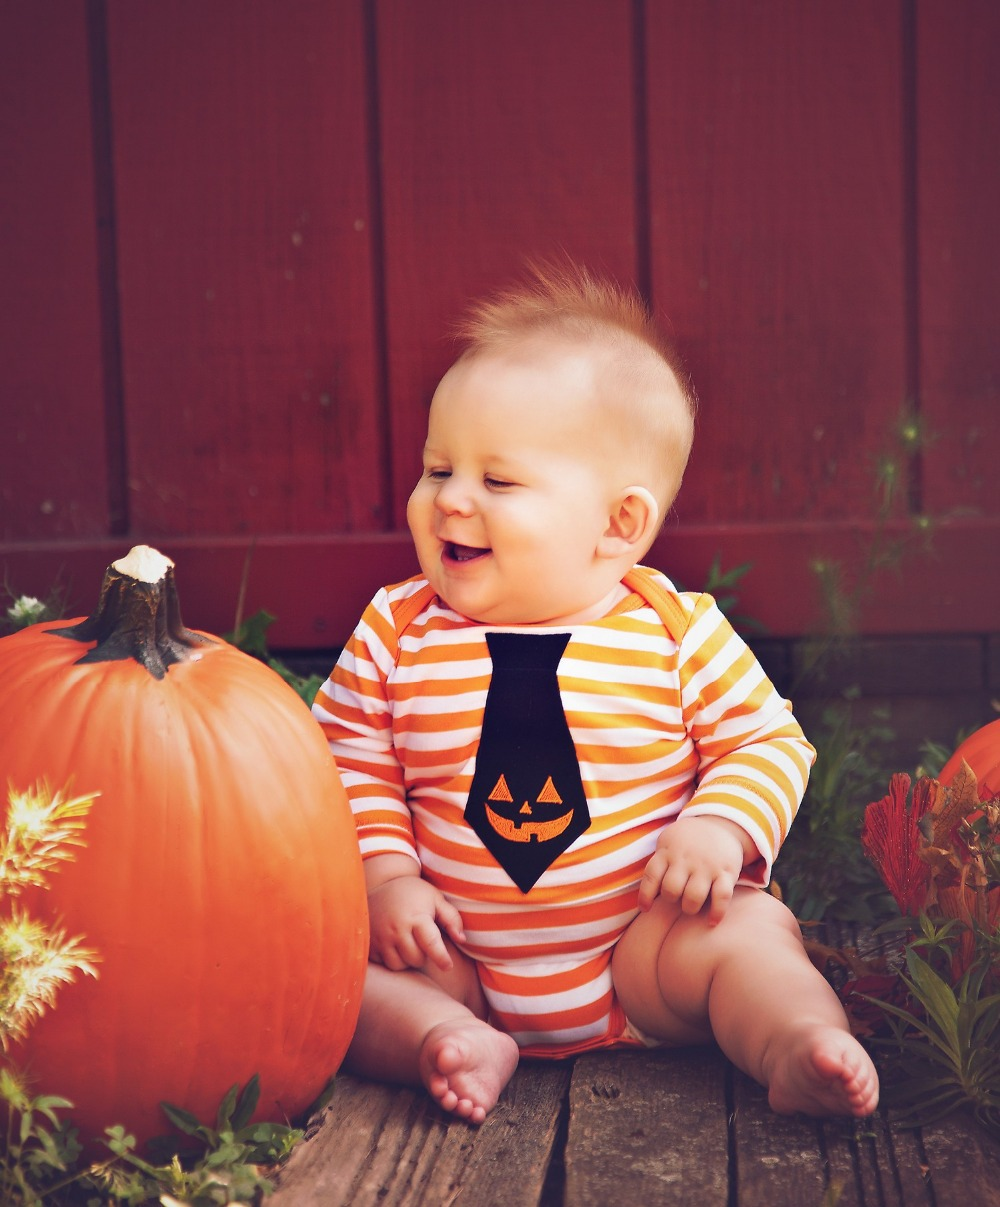 buy halloween baby clothes 1st pumpkin my first halloween pumpkin ghost orange white stripes halloween romper 0 12m from reliable